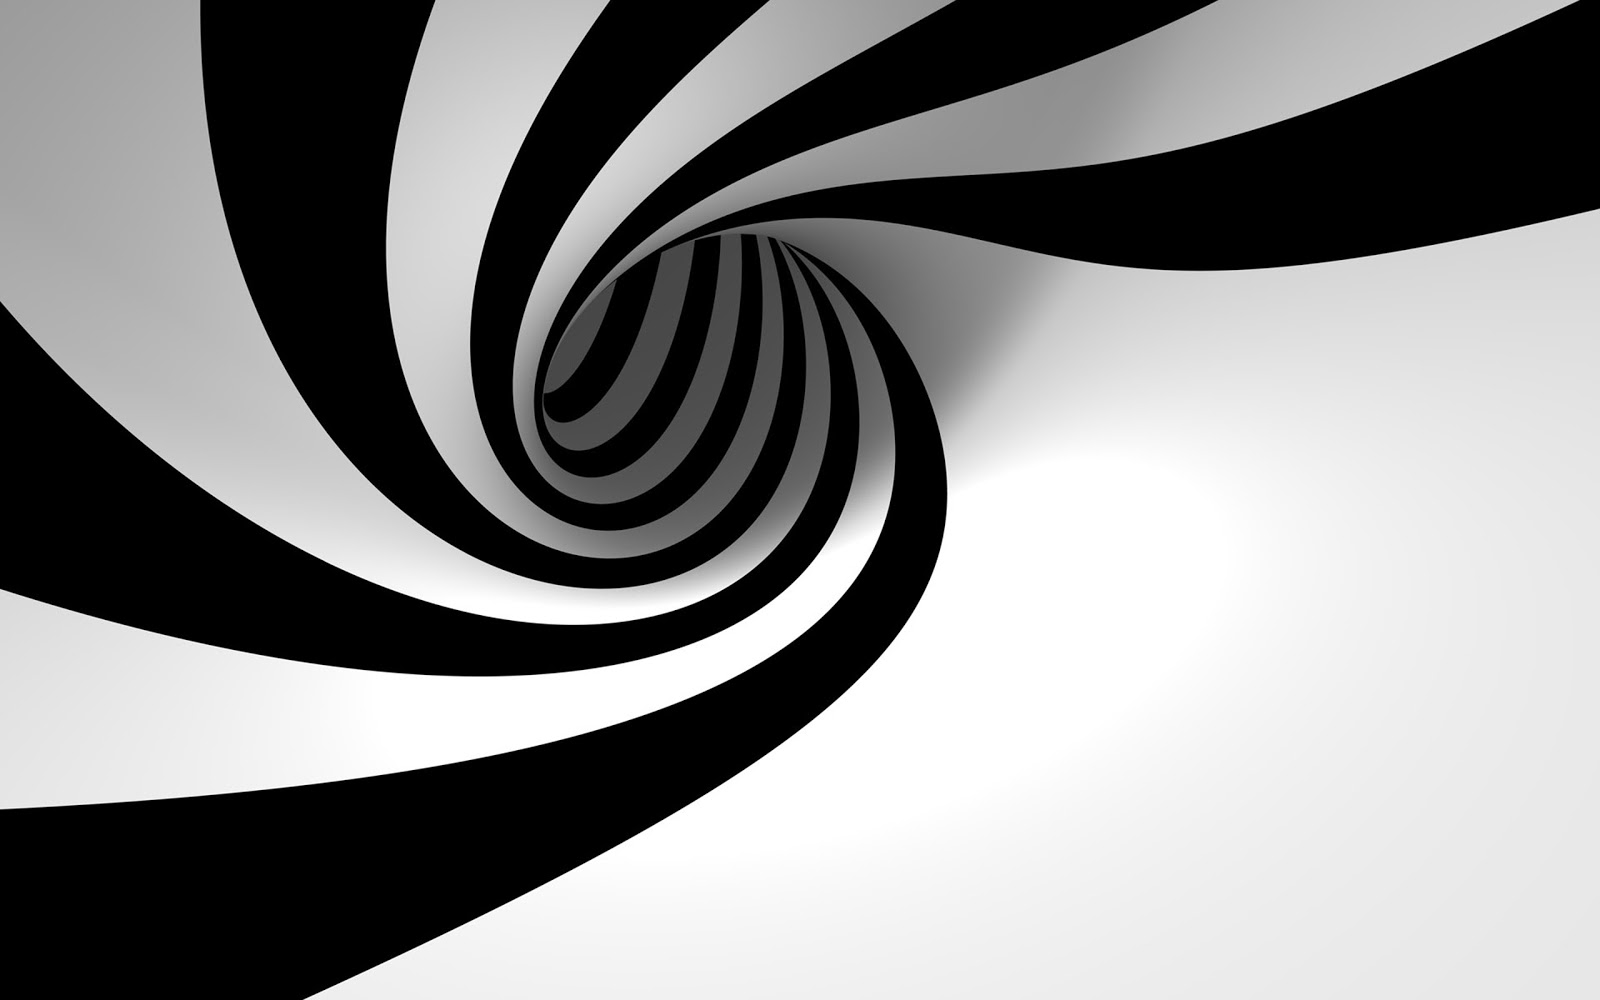 http://4.bp.blogspot.com/-yW1FOAc0ug4/ULF73Y5jnWI/AAAAAAAAAO0/pp-faYJDgCU/s1600/3d_view_abstract_black_and_white_minimalistic_hole_zebra_stripes_2560x1600_wallpaper_Wallpaper_2560x1600_www.wallpaperswa.com.jpg